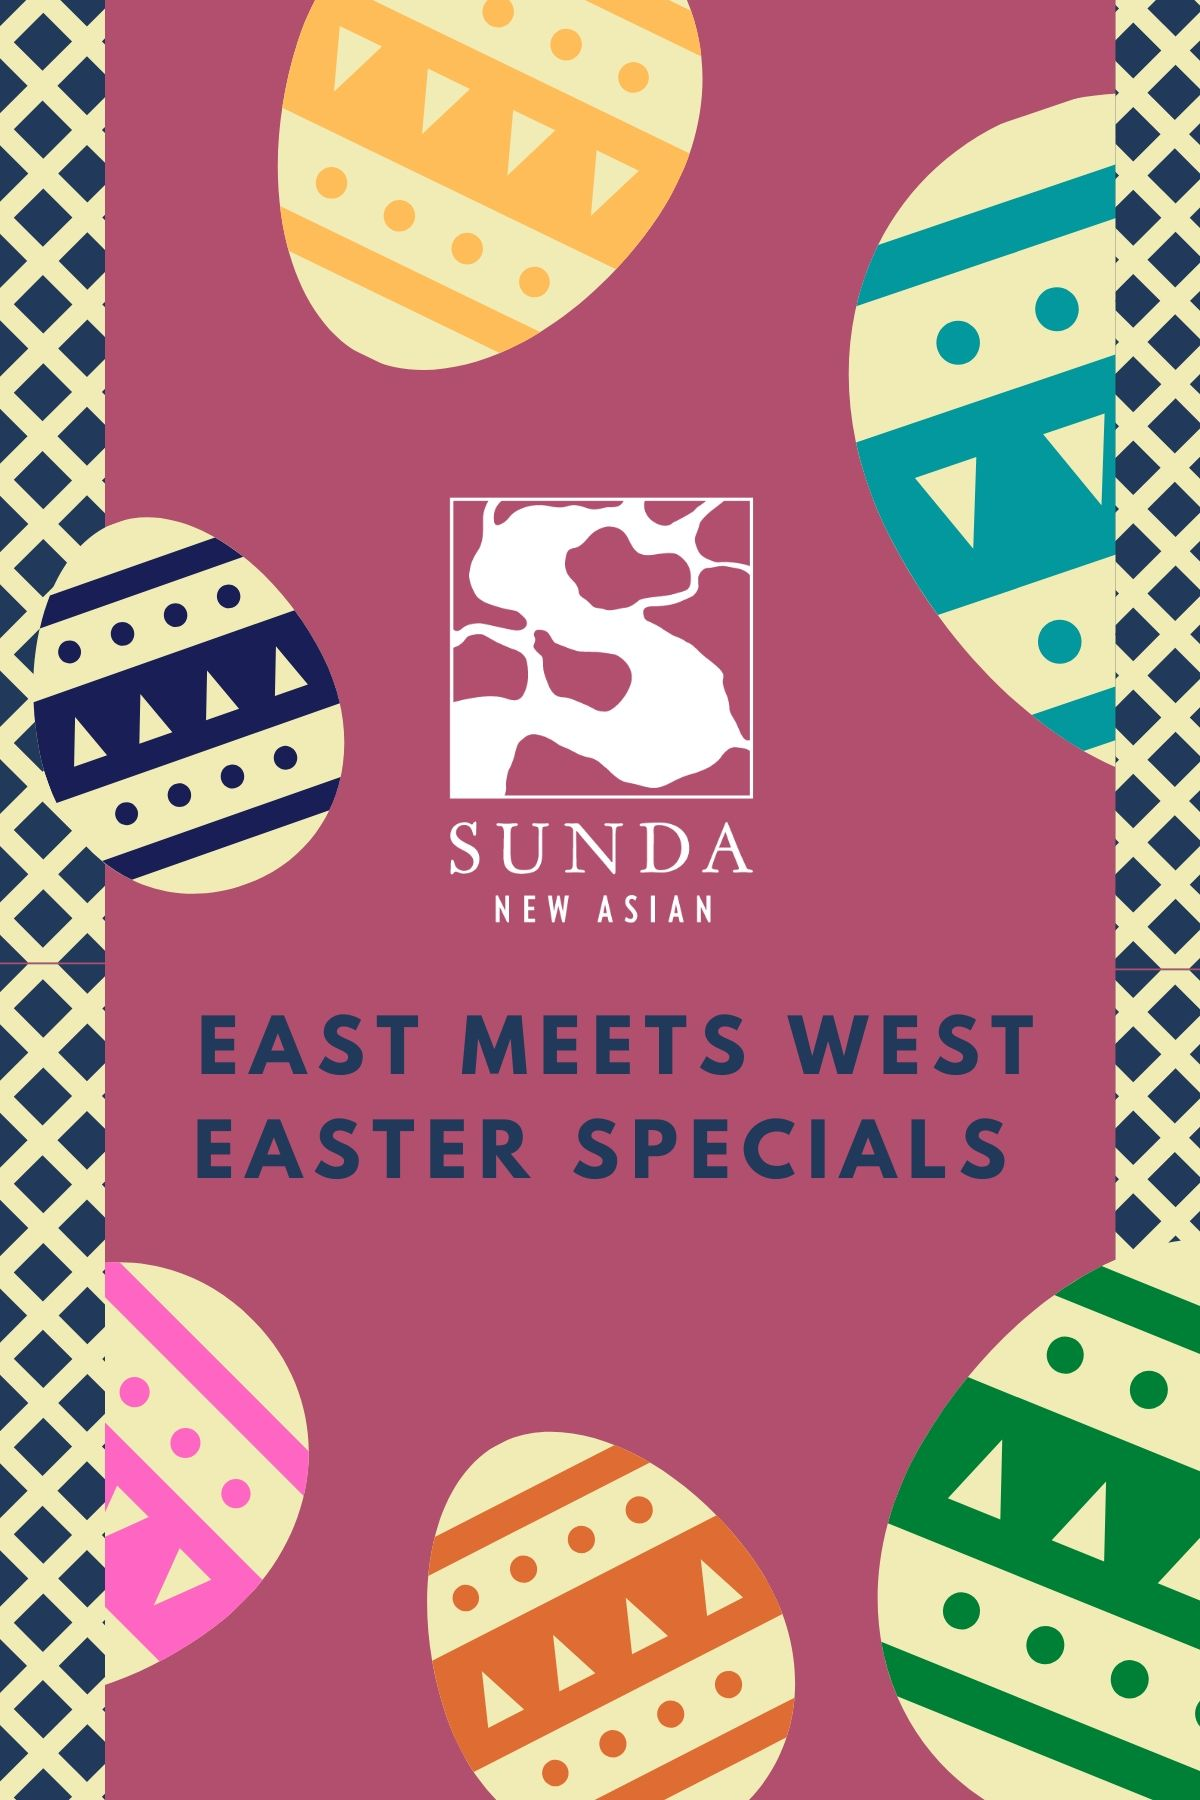 Easter Sunday Weekend Specials